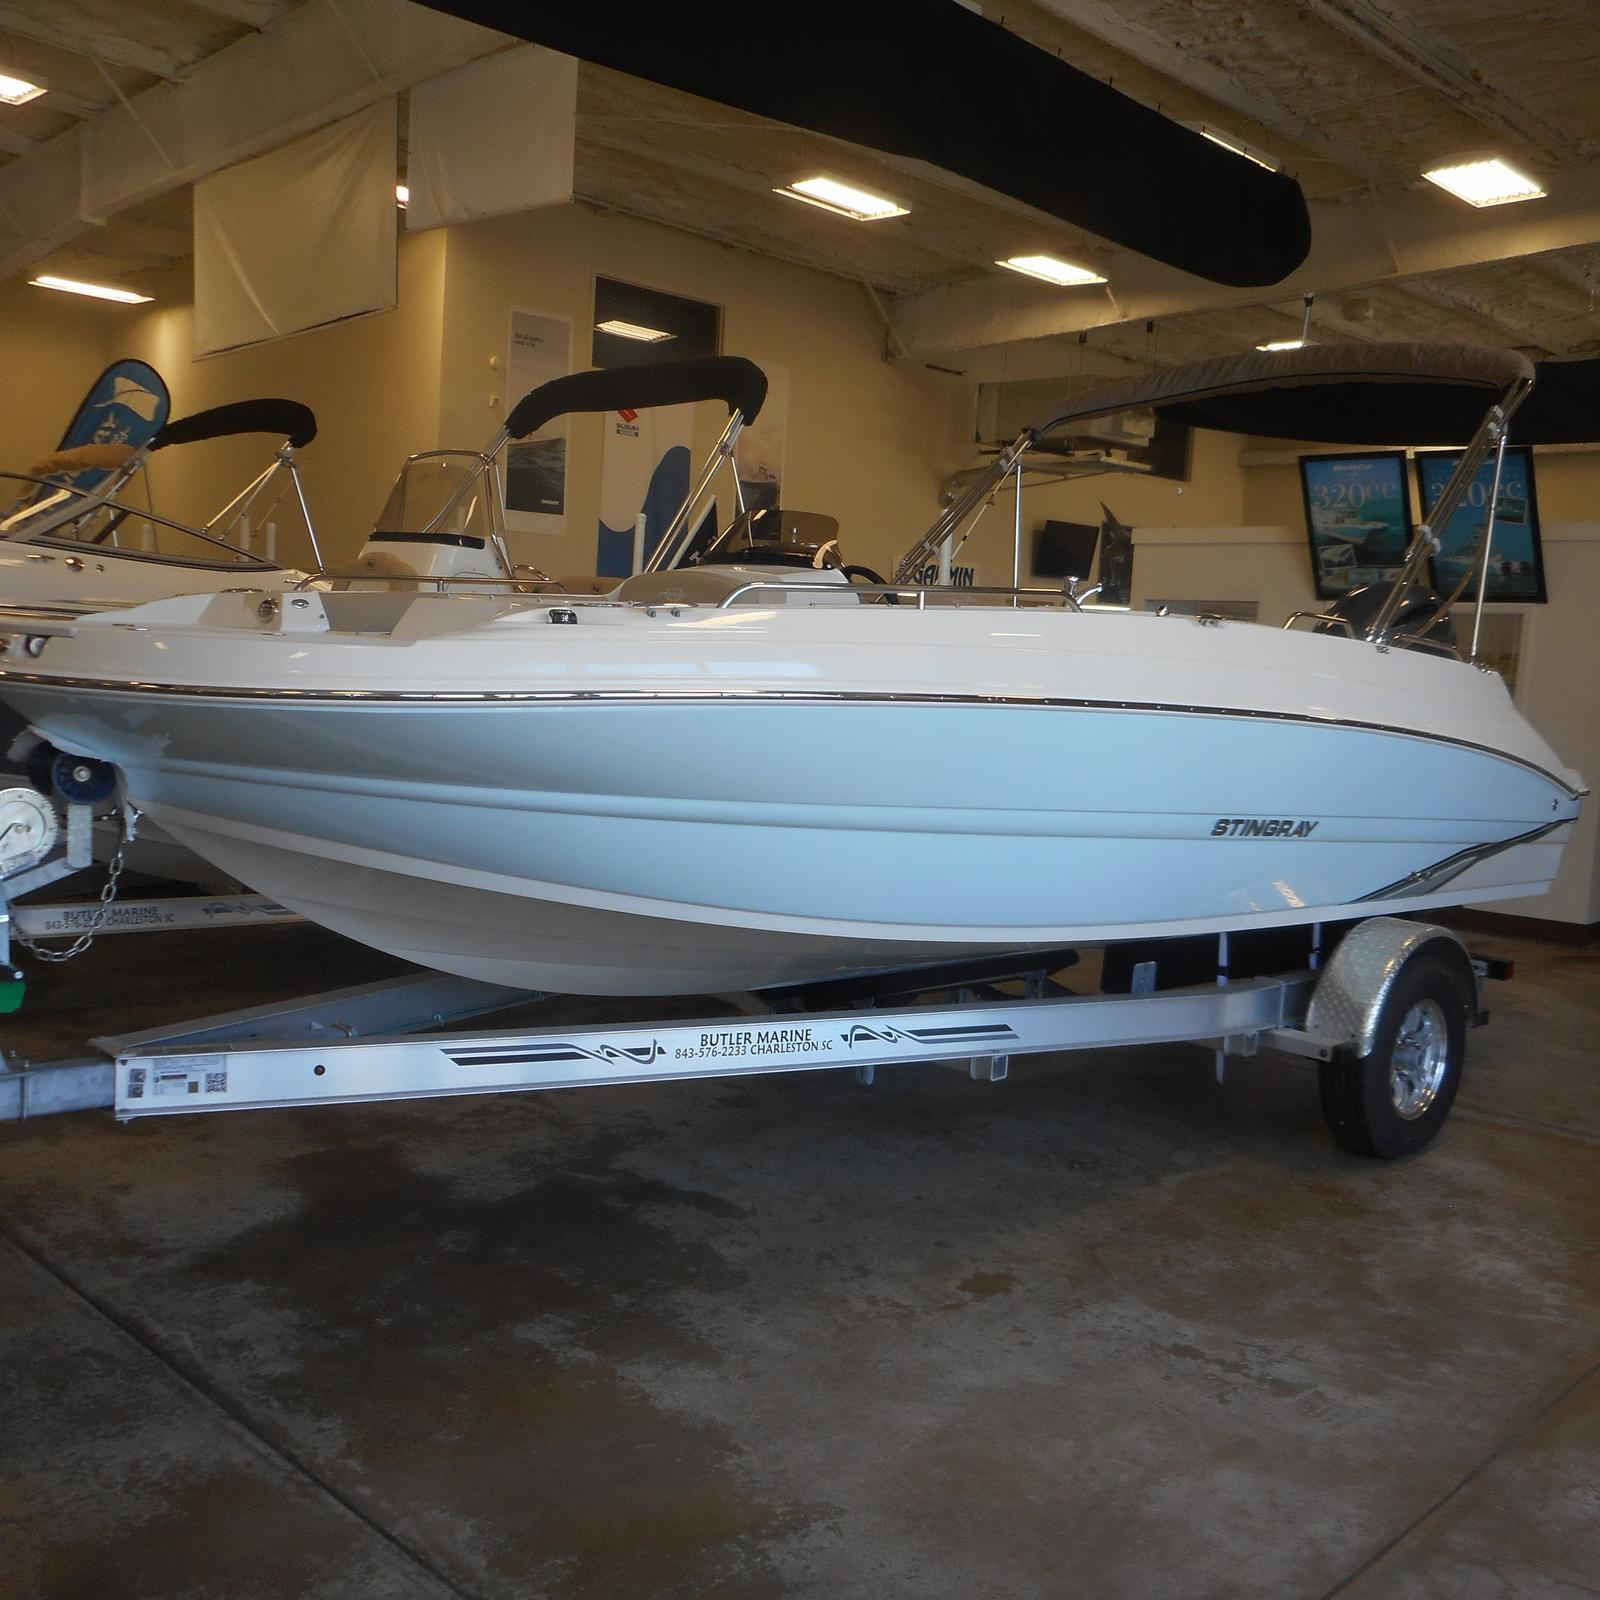 Inventory from Grady-White and Stingray Boats Charleston